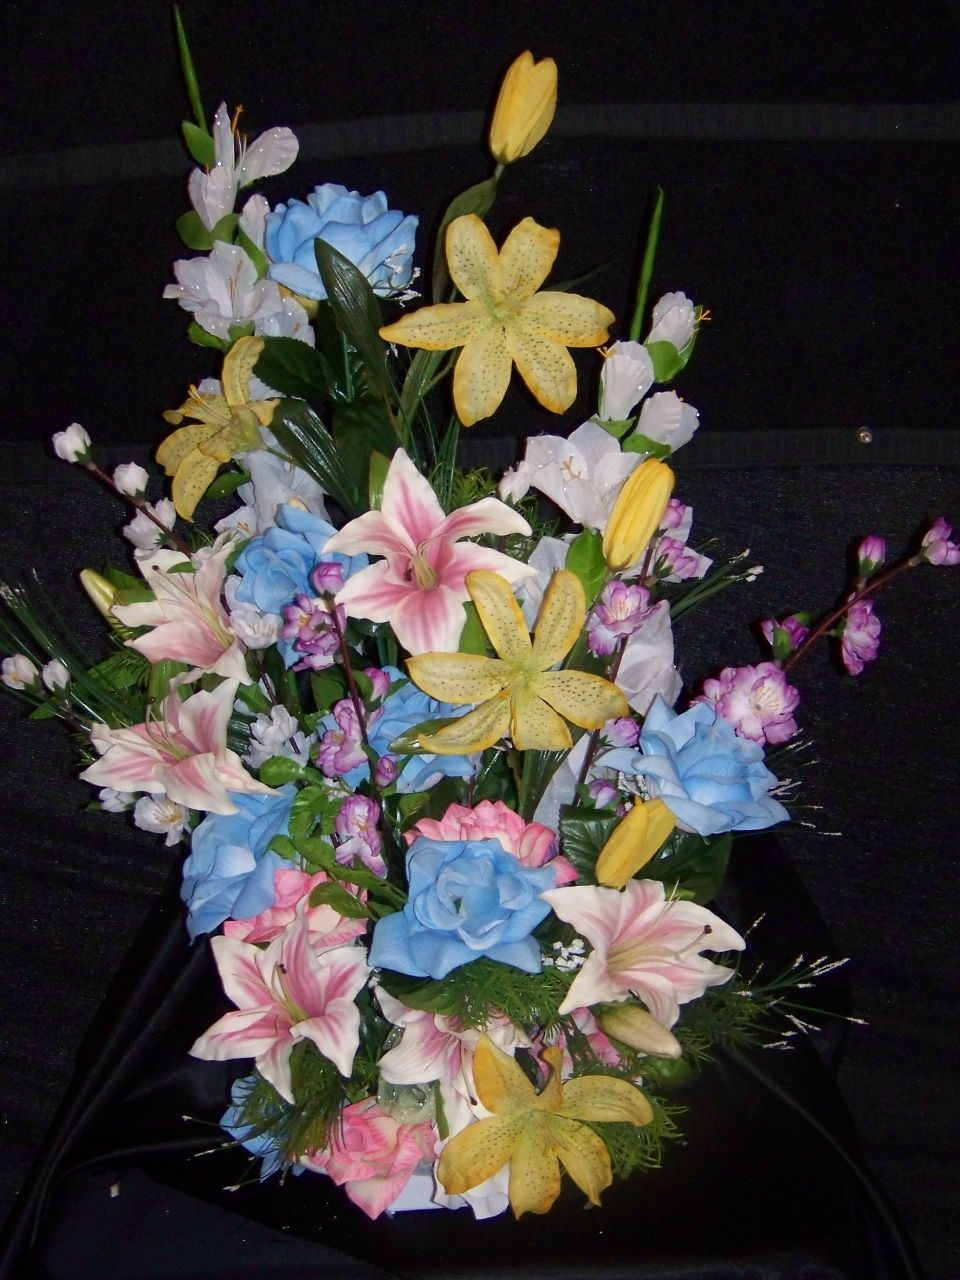 Pictures Of Discount Silk Flowers For Weddings Flowers Silk